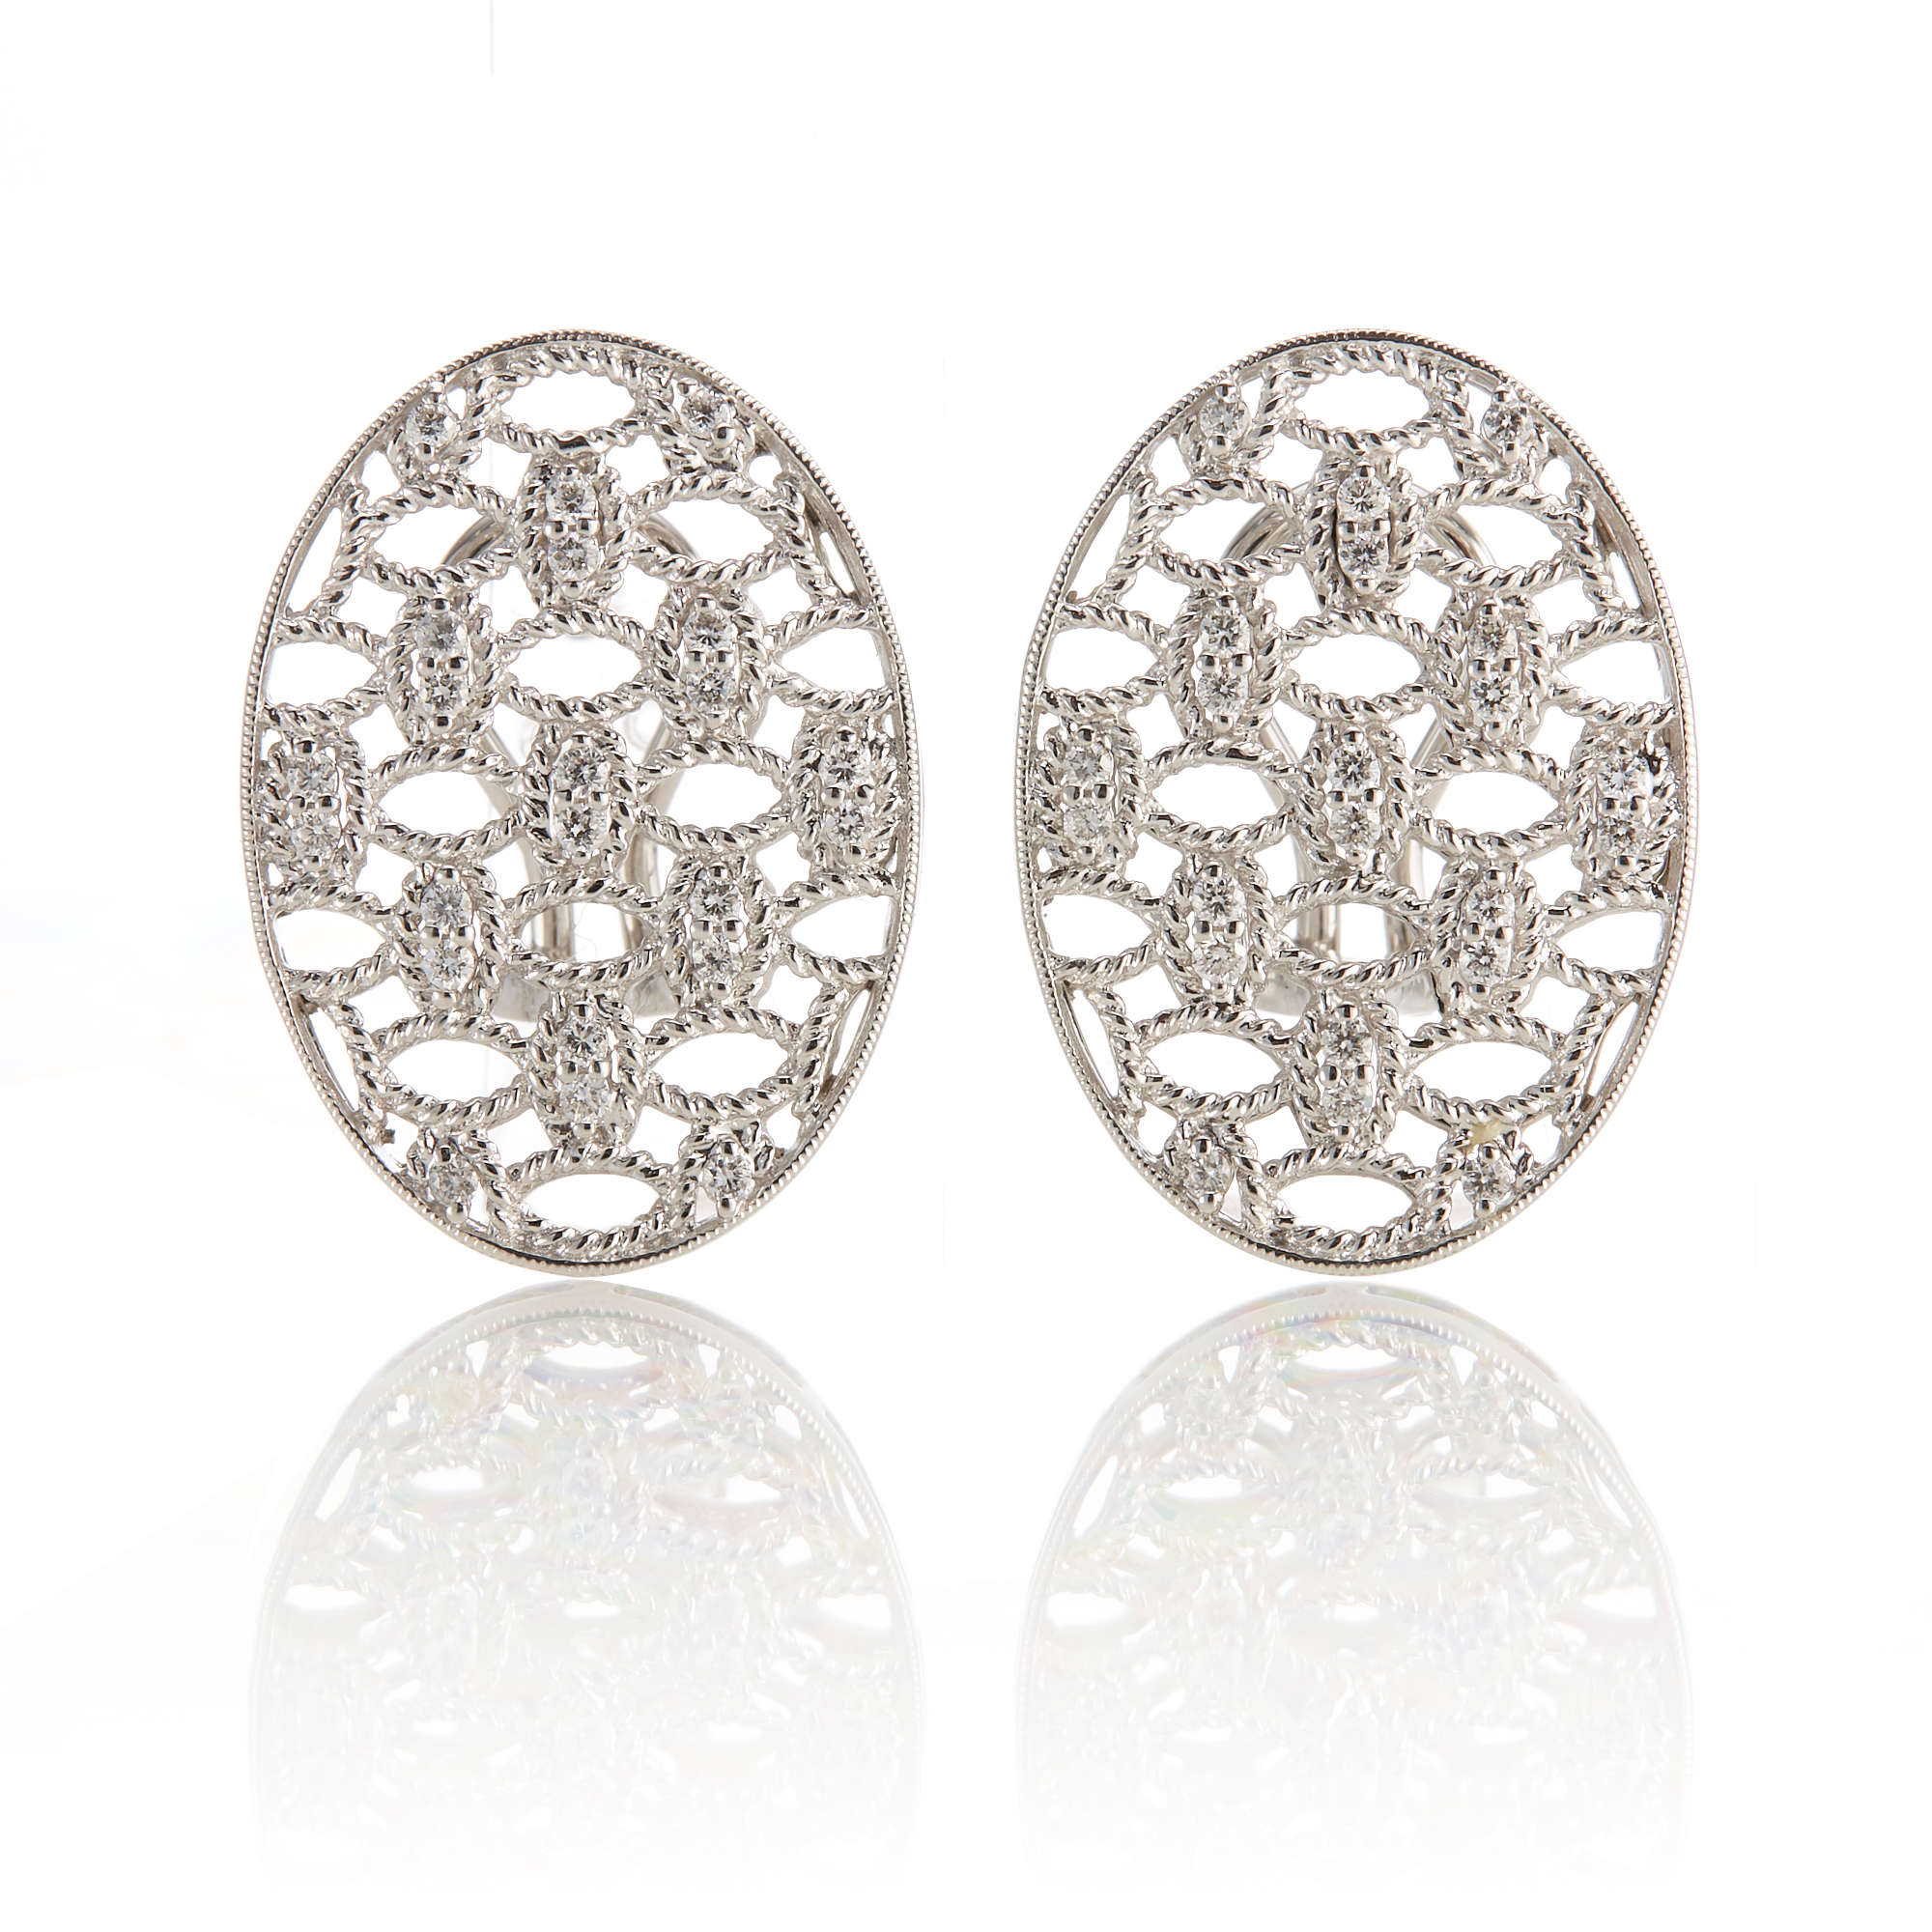 Openwork Oval Diamond Earrings